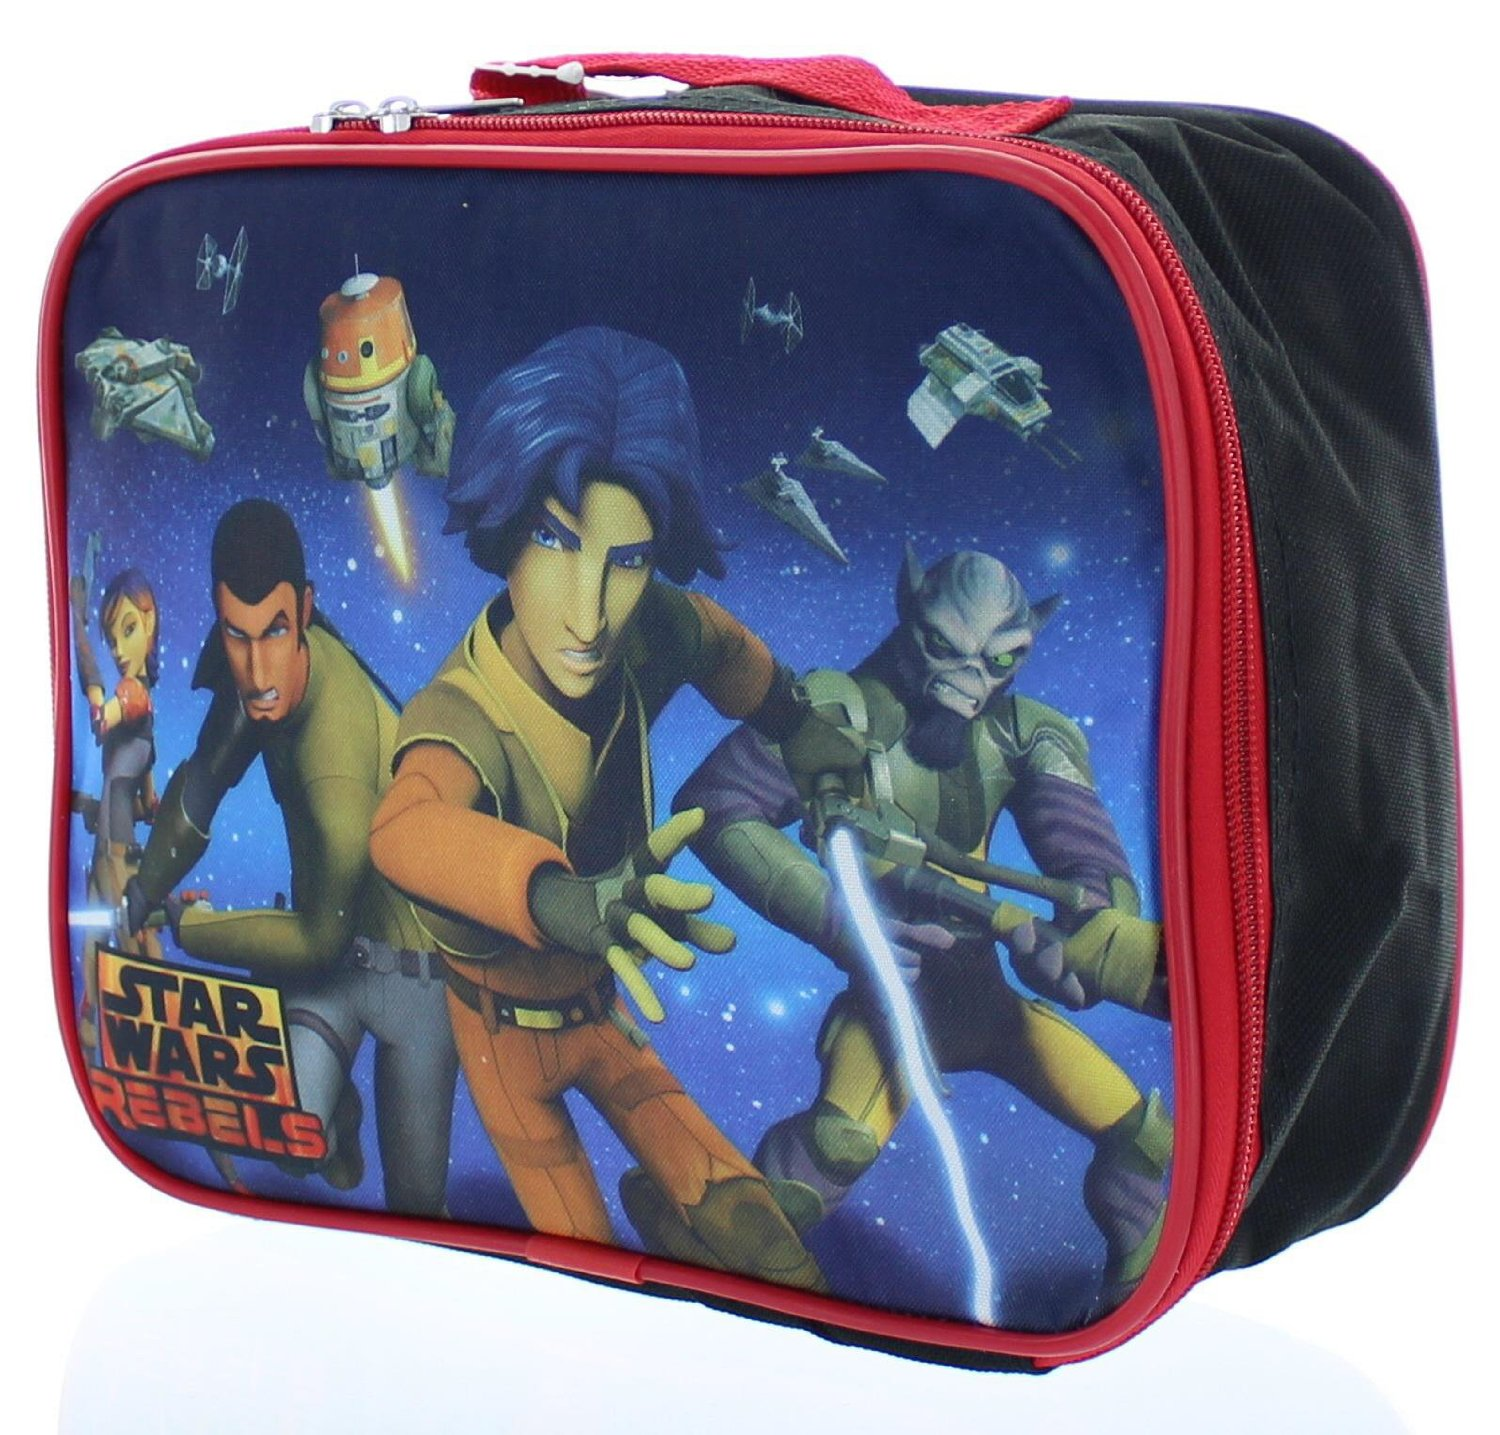 Star Wars Rebels Insulated Lunch Bag - Lunch Box